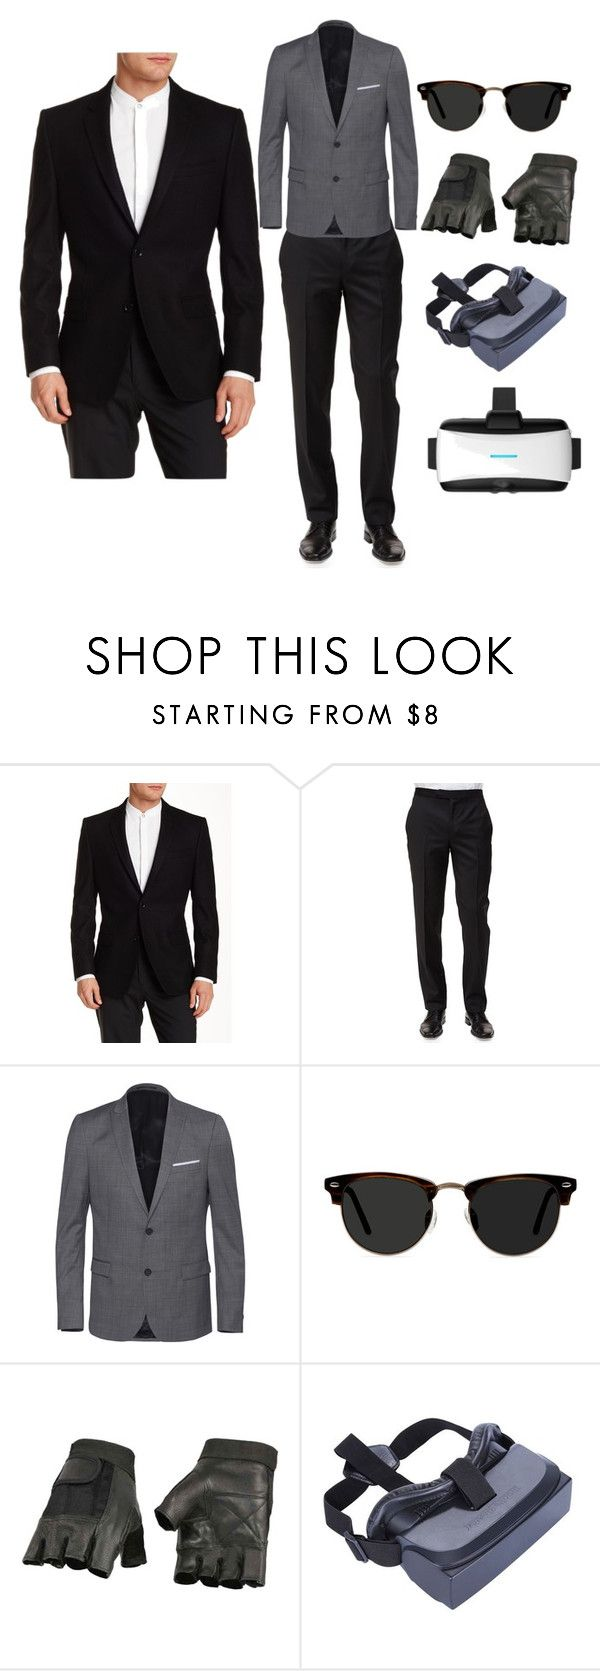 """Father's Day gifts"" by ak-chuck ❤ liked on Polyvore featuring Versace, Ermenegildo Zegna, The Kooples, Ace, men's fashion and menswear"